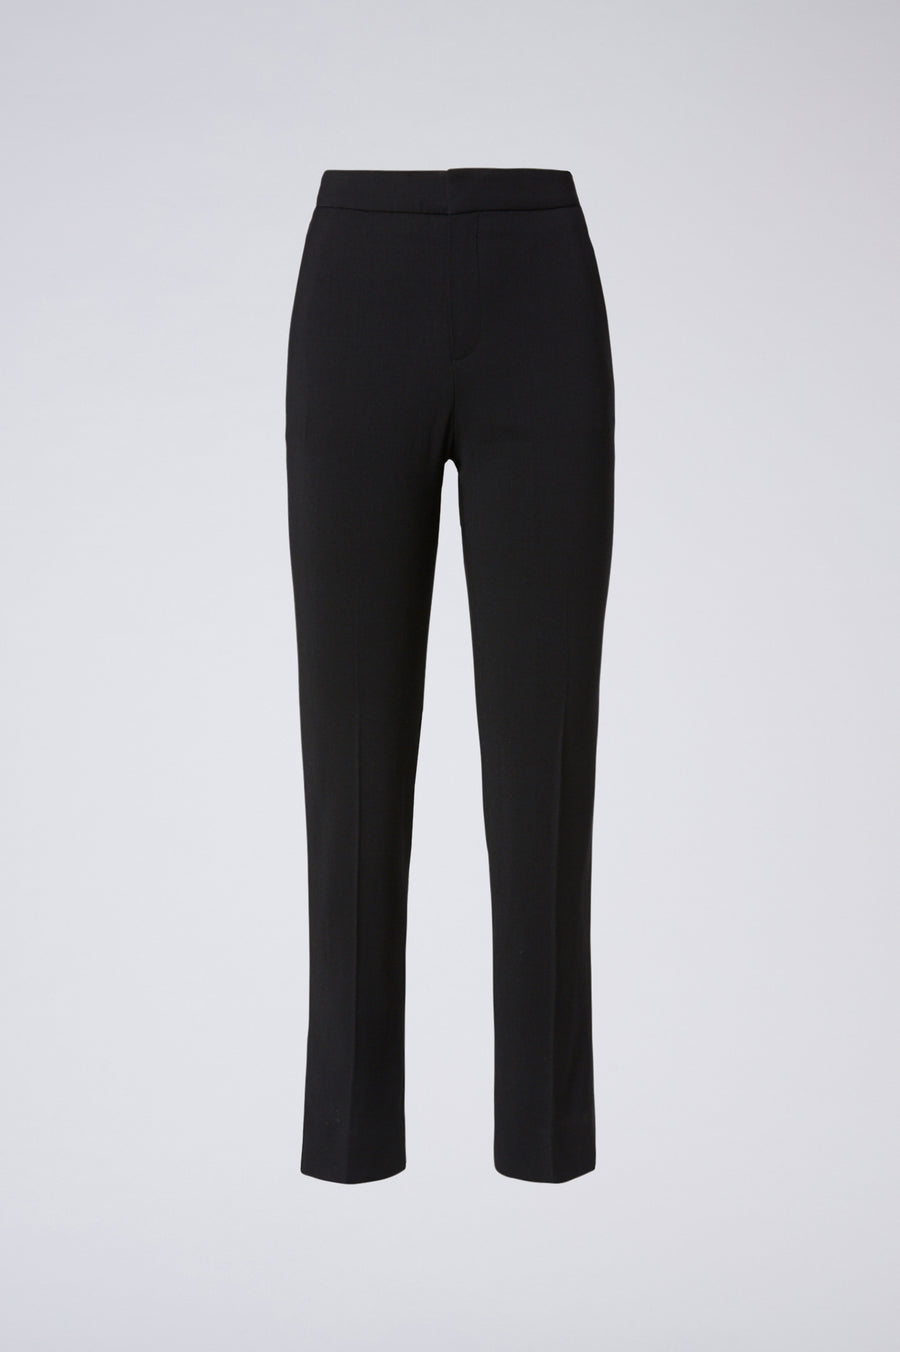 Atelier Slim Cropped Trouser, cropped pant, welt and a flap back pocket, hook and bar closure, Color Black